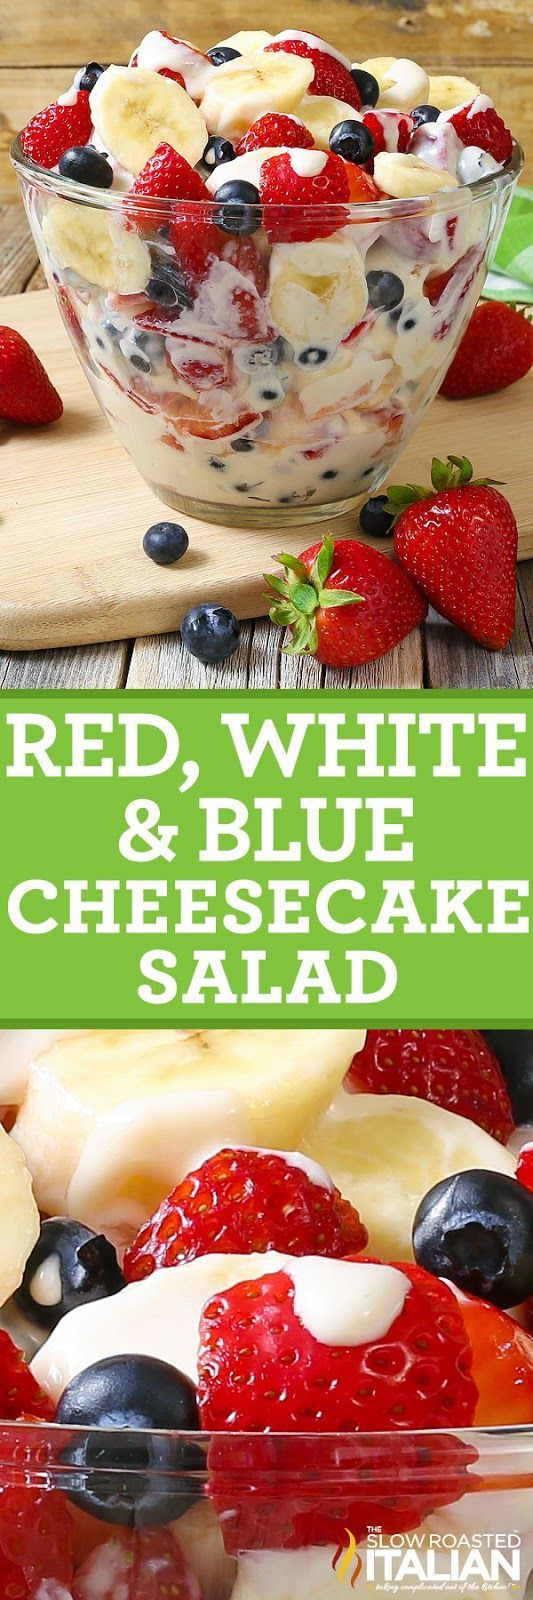 Red, White and Blue Cheesecake Salad comes together so easy with fresh fruit and a rich and creamy cheesecake filling to create the most glorious fruit salad ever! Every bite is absolutely bursting with summer flavor and you are going to go nuts over this